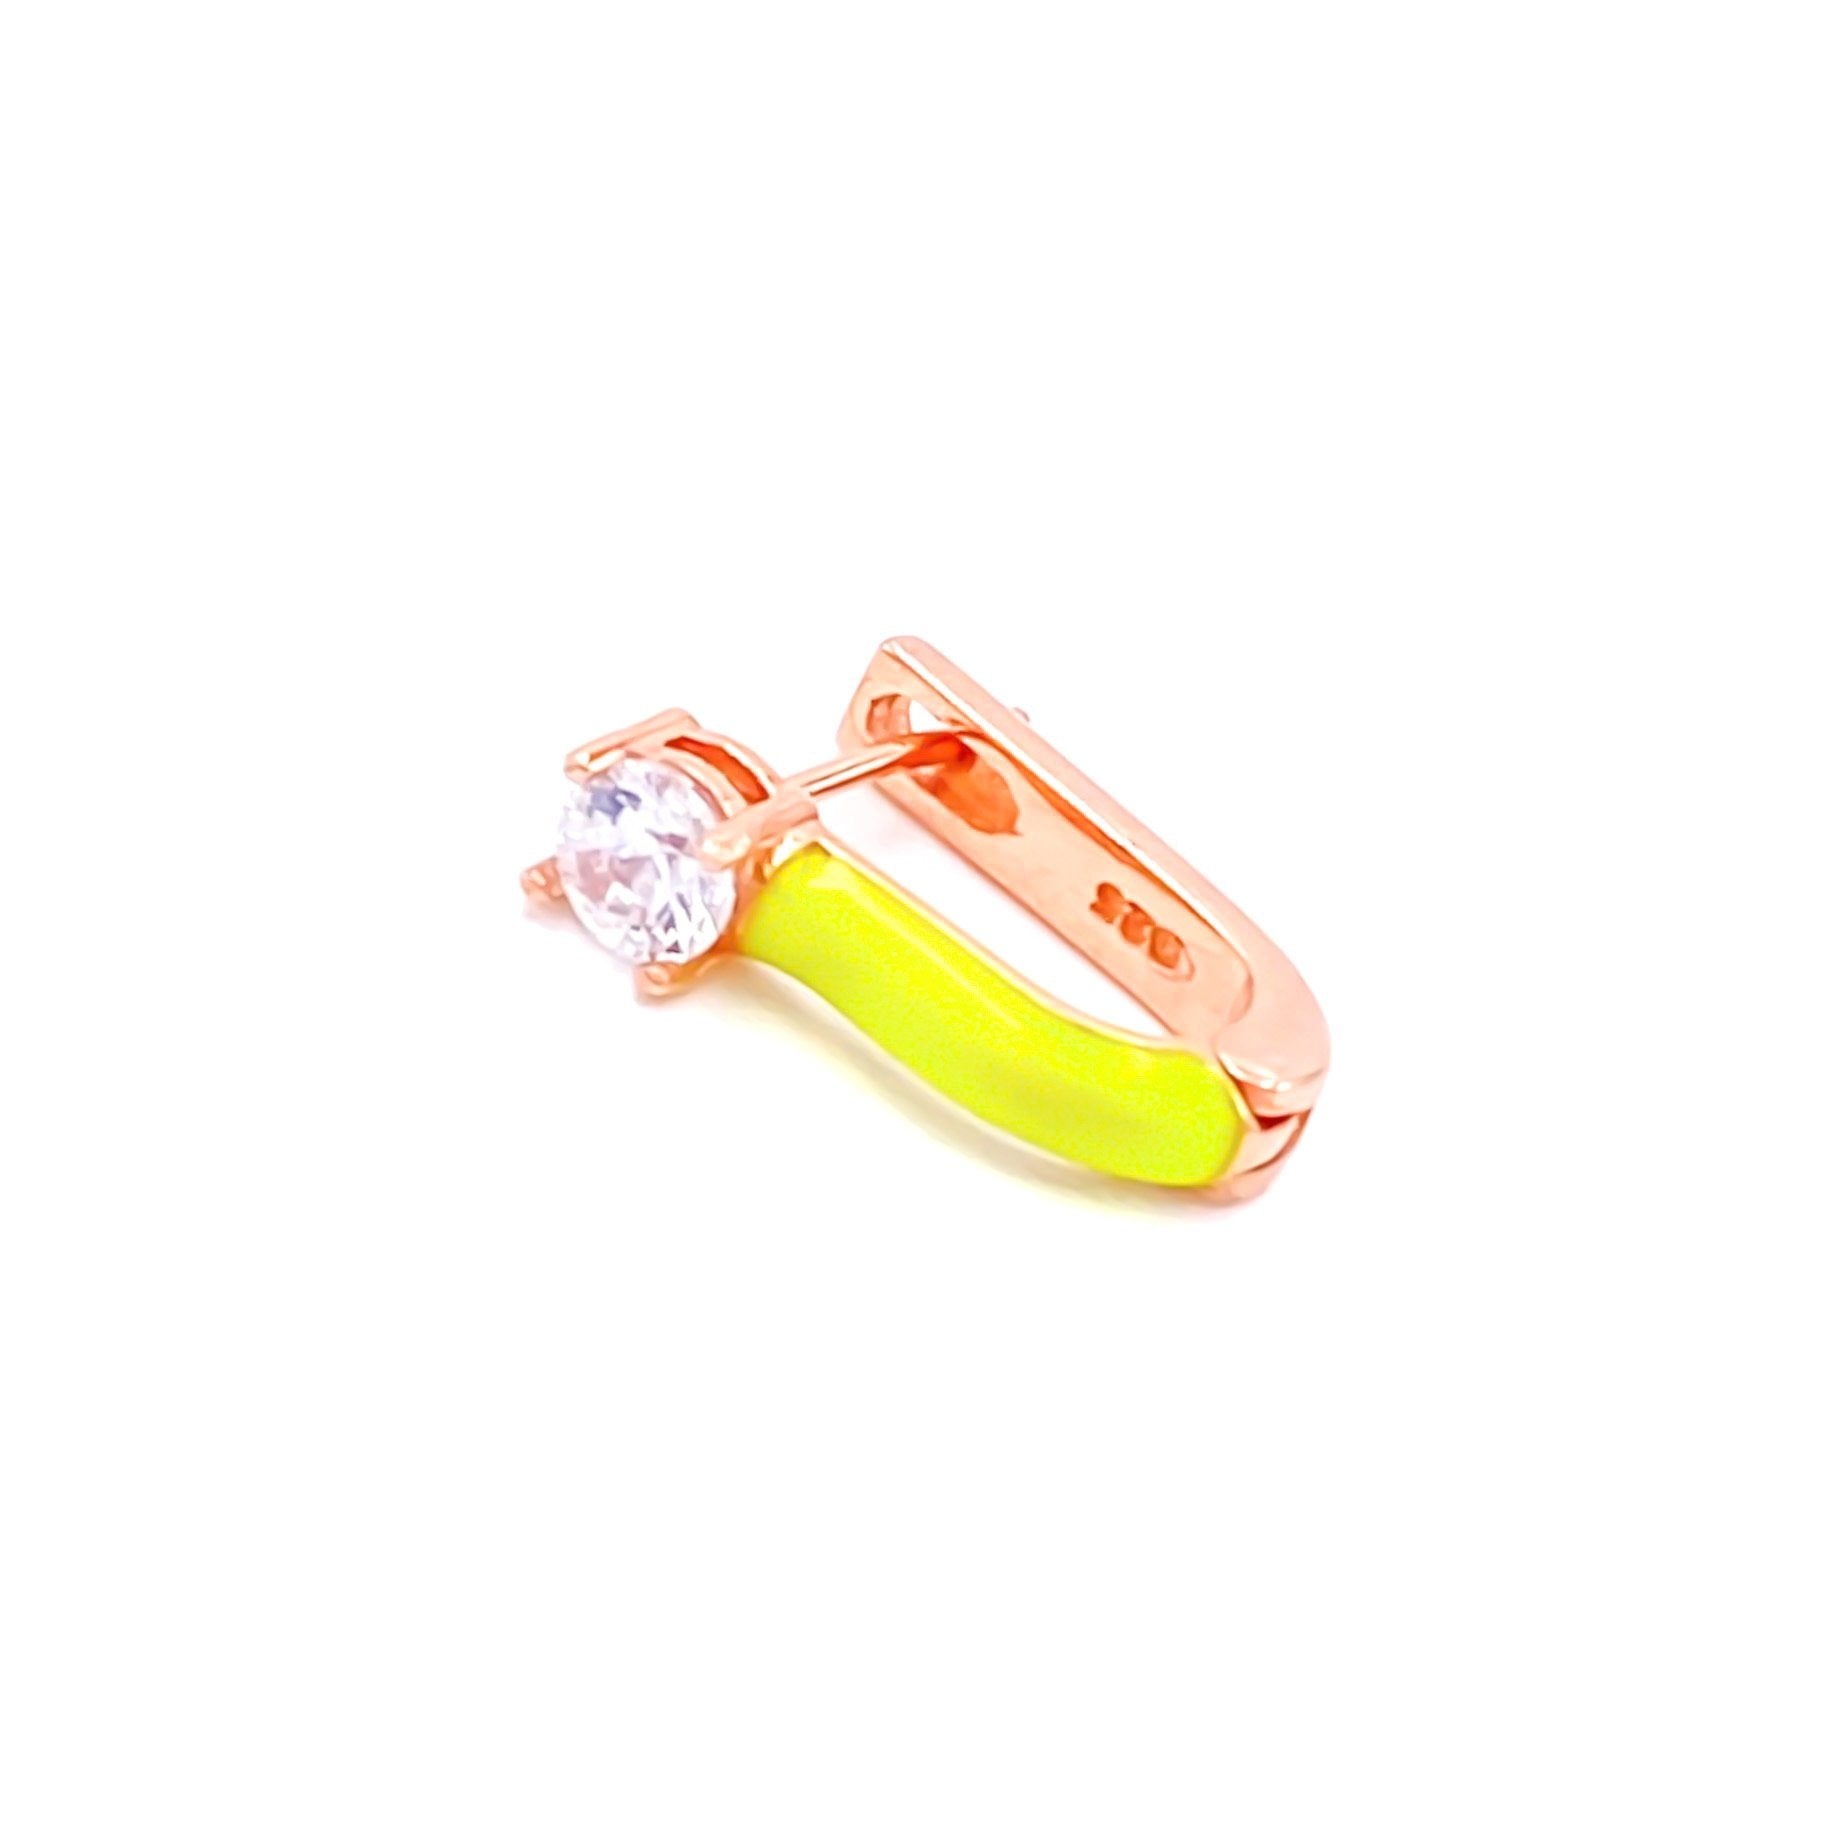 Neon Yellow Solitaire Earring